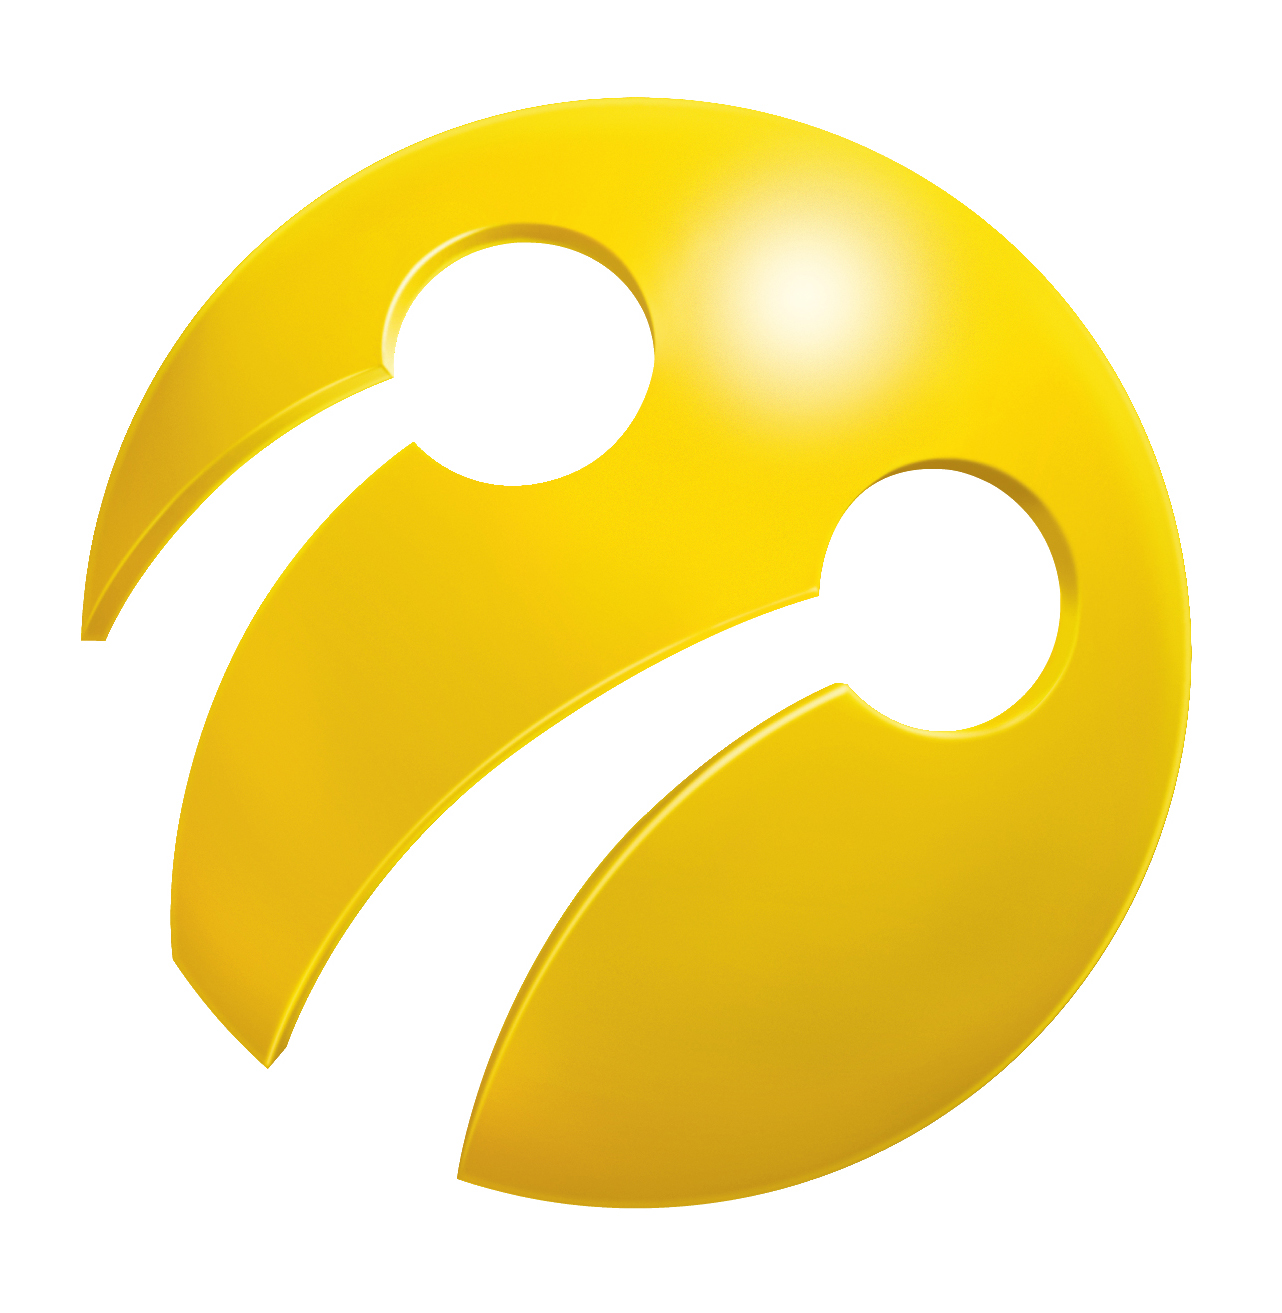 Turkcell Logo Wallpaper